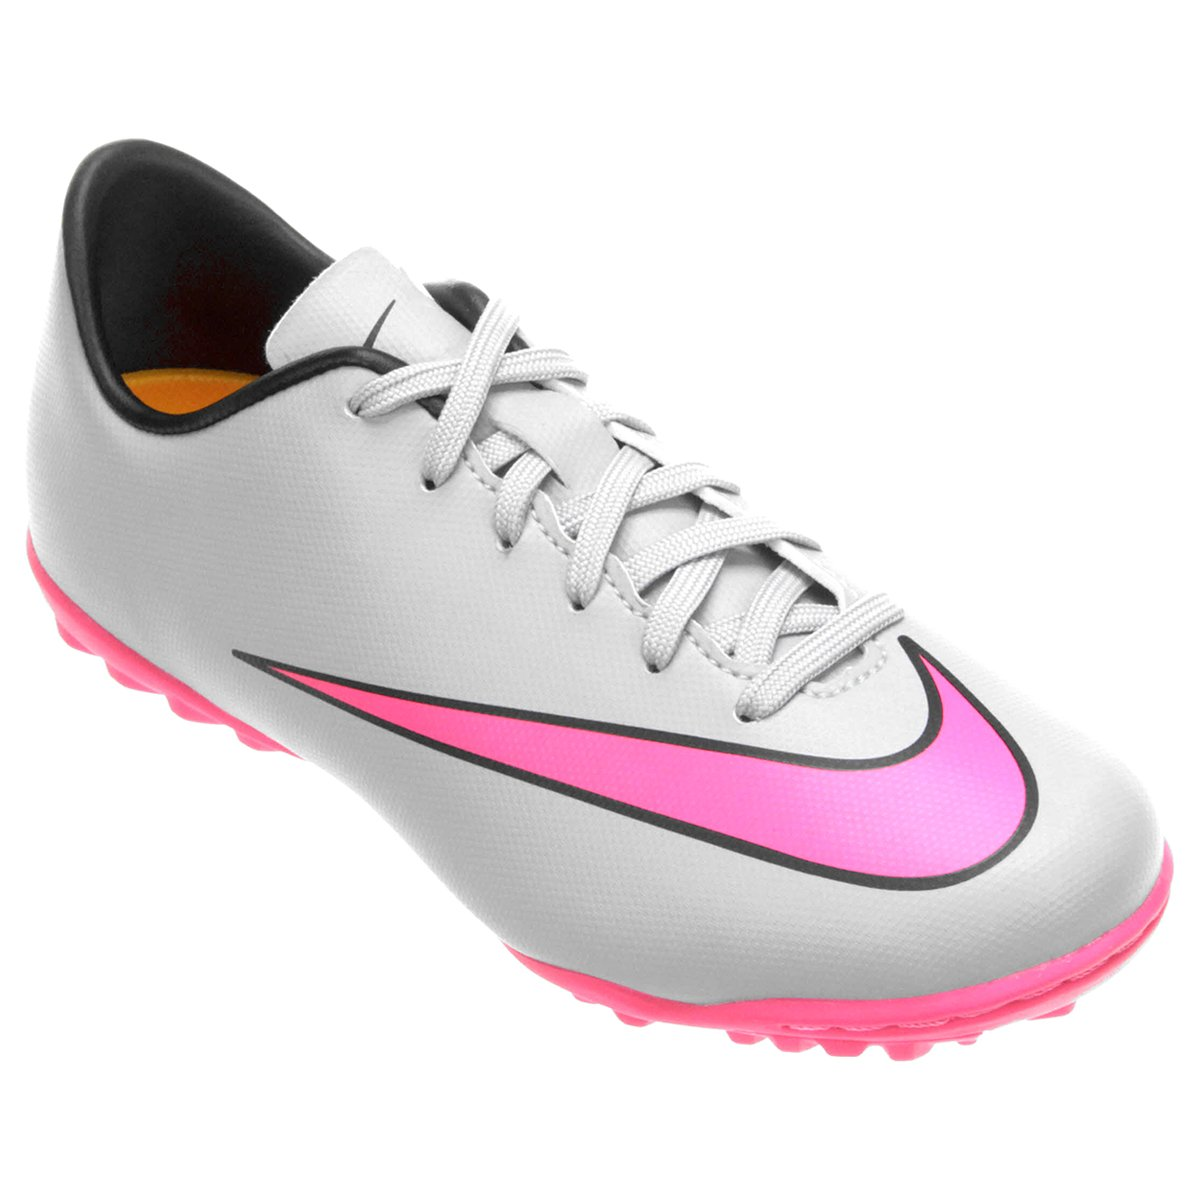 60acc881d95aa Chuteira Nike Mercurial Victory 5 TF Society Infantil - Compre Agora ...